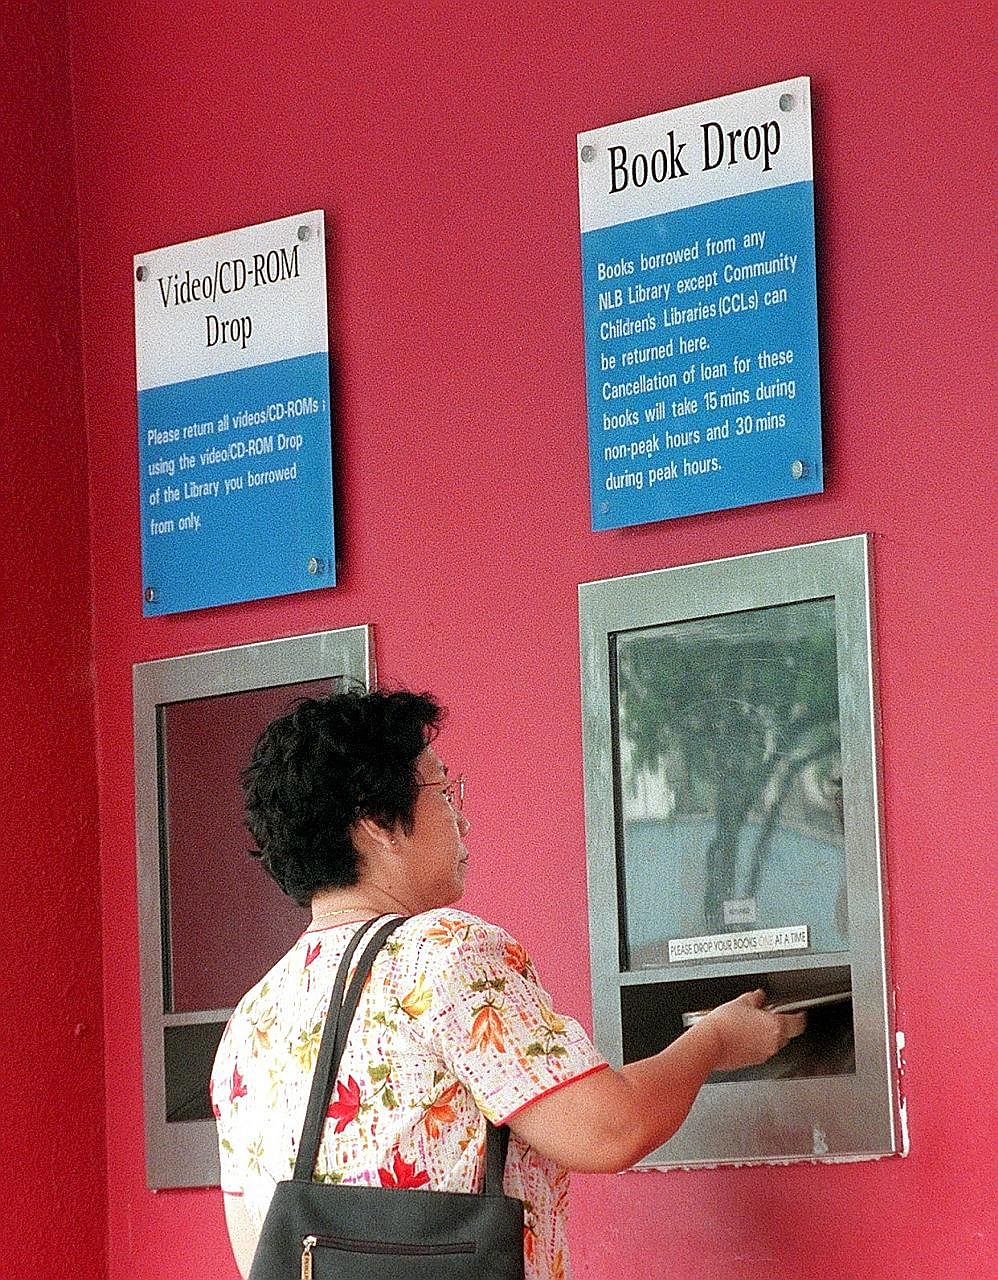 Library books being returned using a book drop. The National Library Board has other avenues to encourage prompt return of items, such as a free e-mail reminder service.